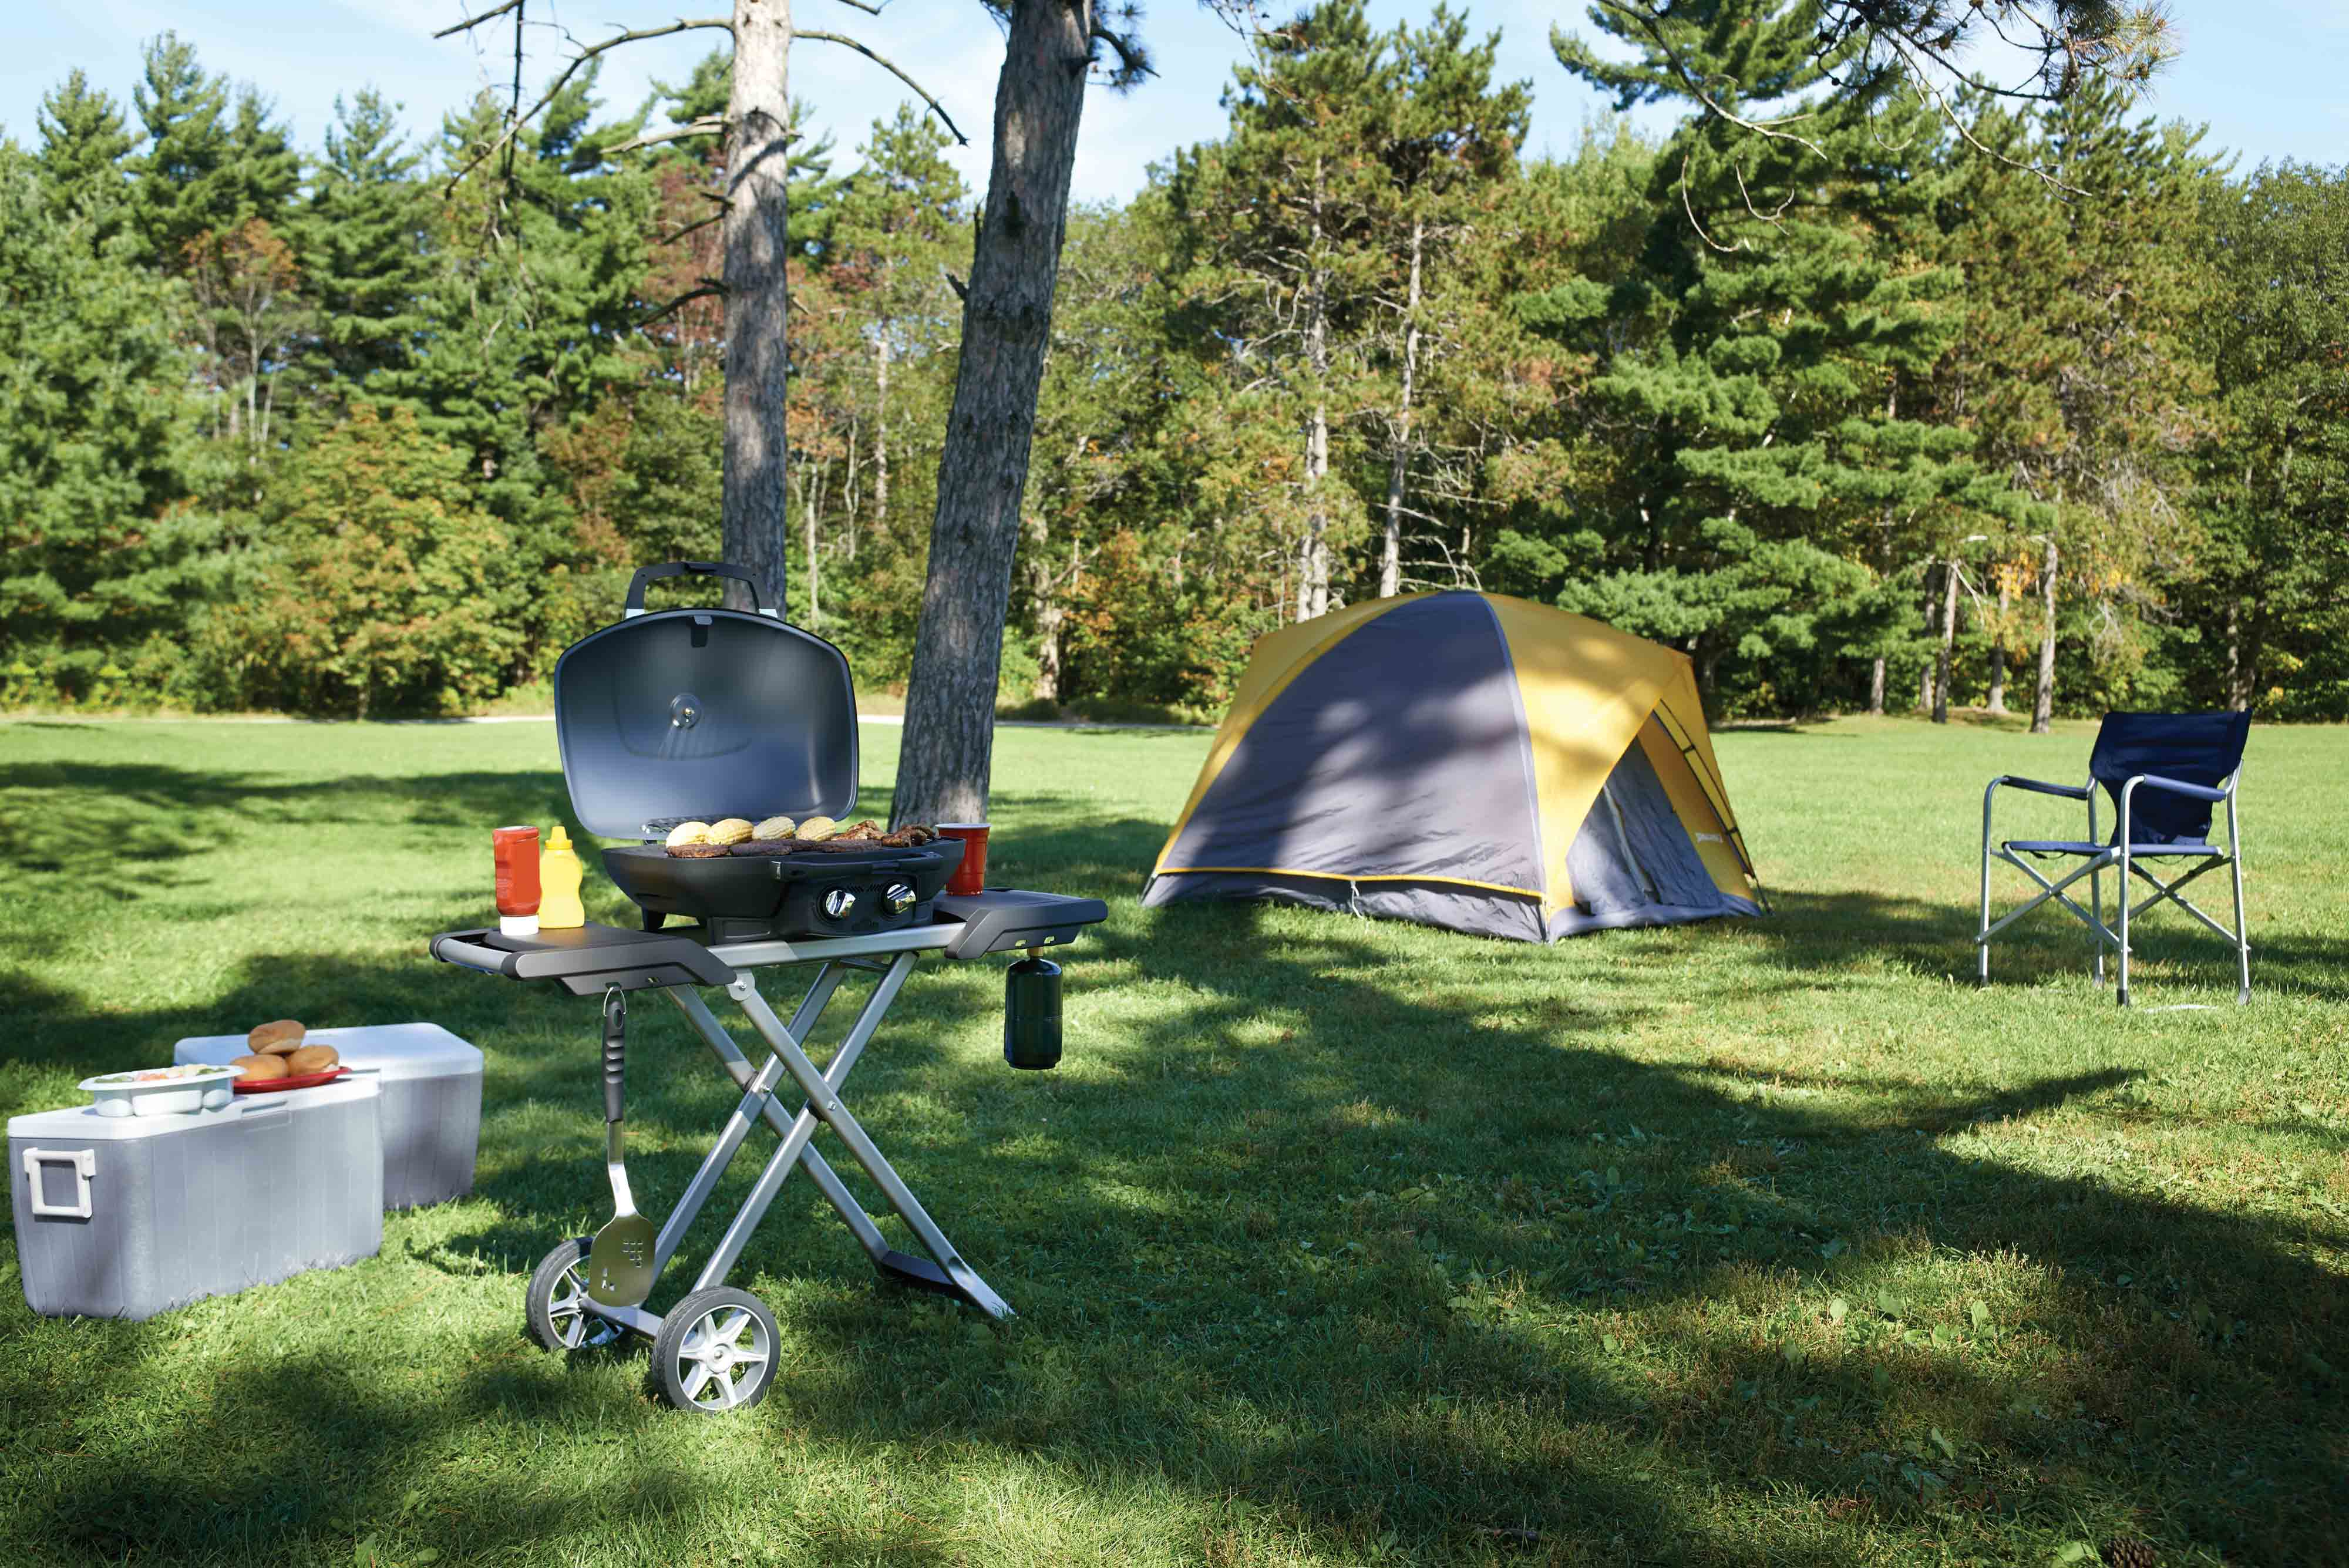 Camping & Portable BBQ's